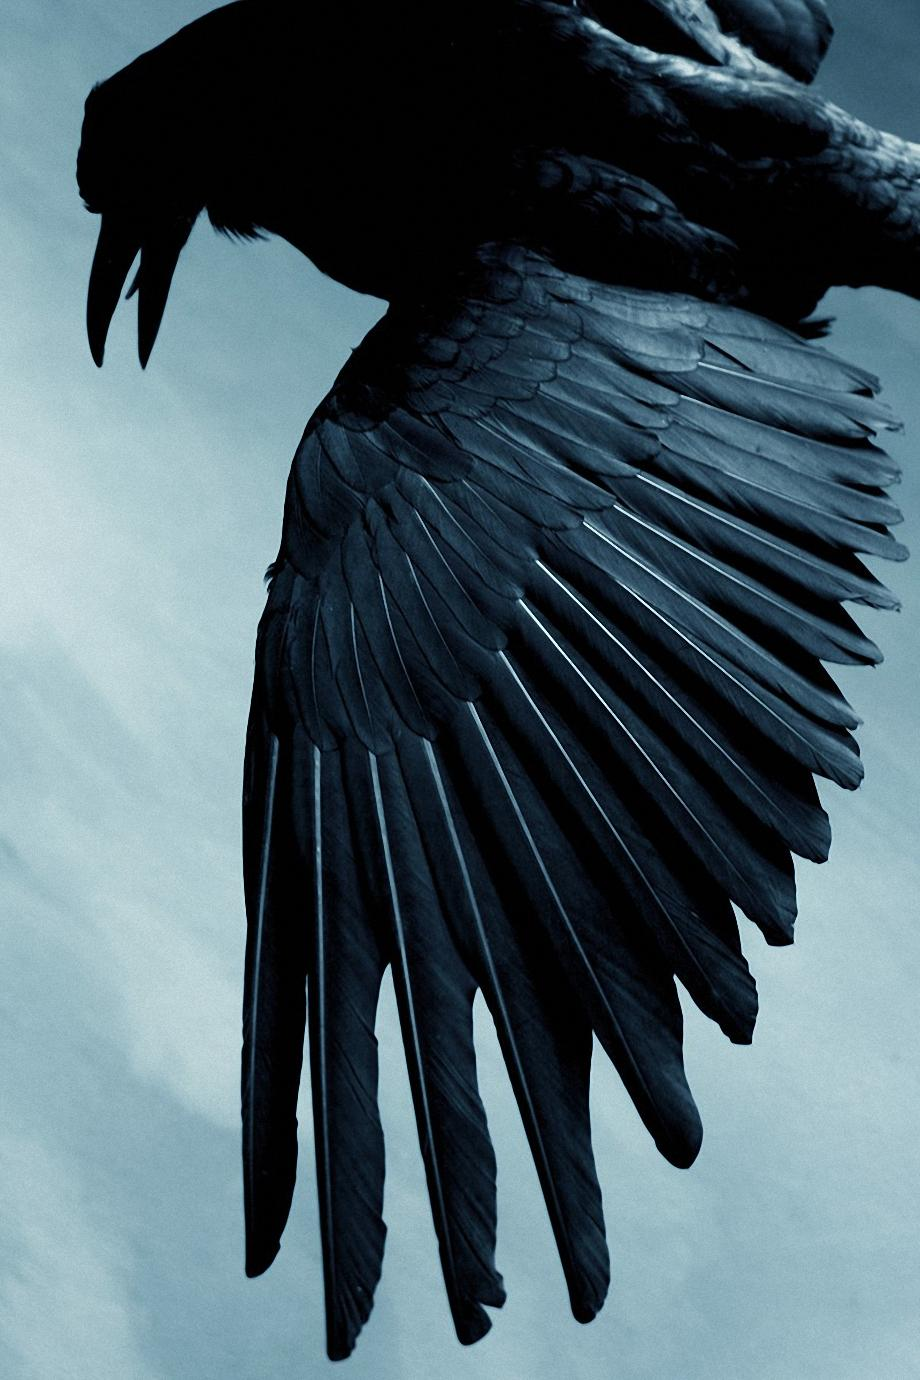 black raven bird wallpaper